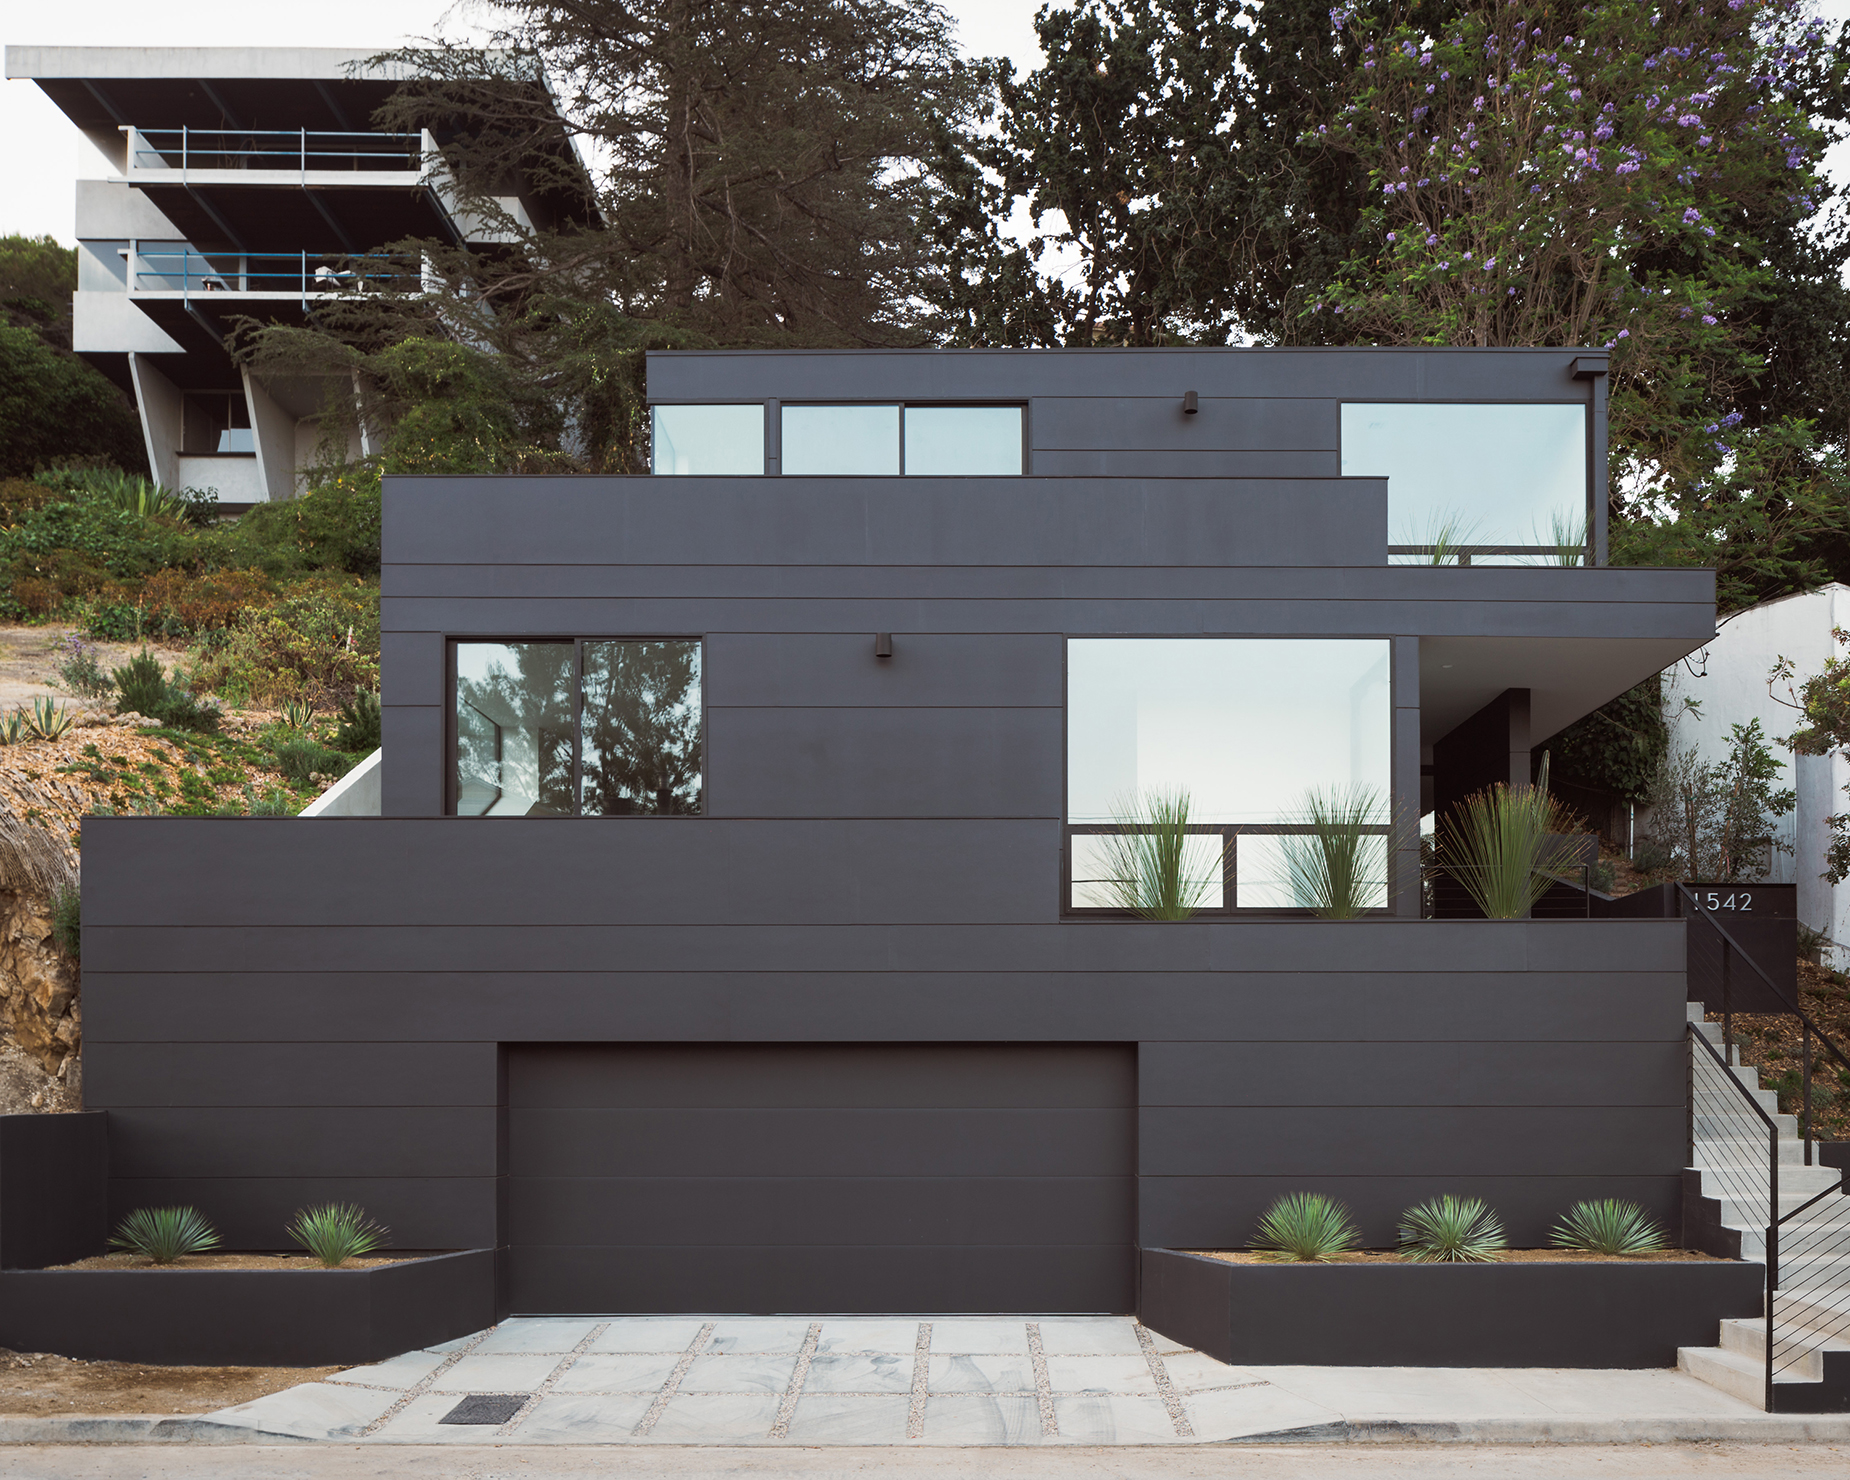 Residential Architecture Award Winners 2018 Aia Los Angeles - Two-storey-single-family-residence-by-baan-design